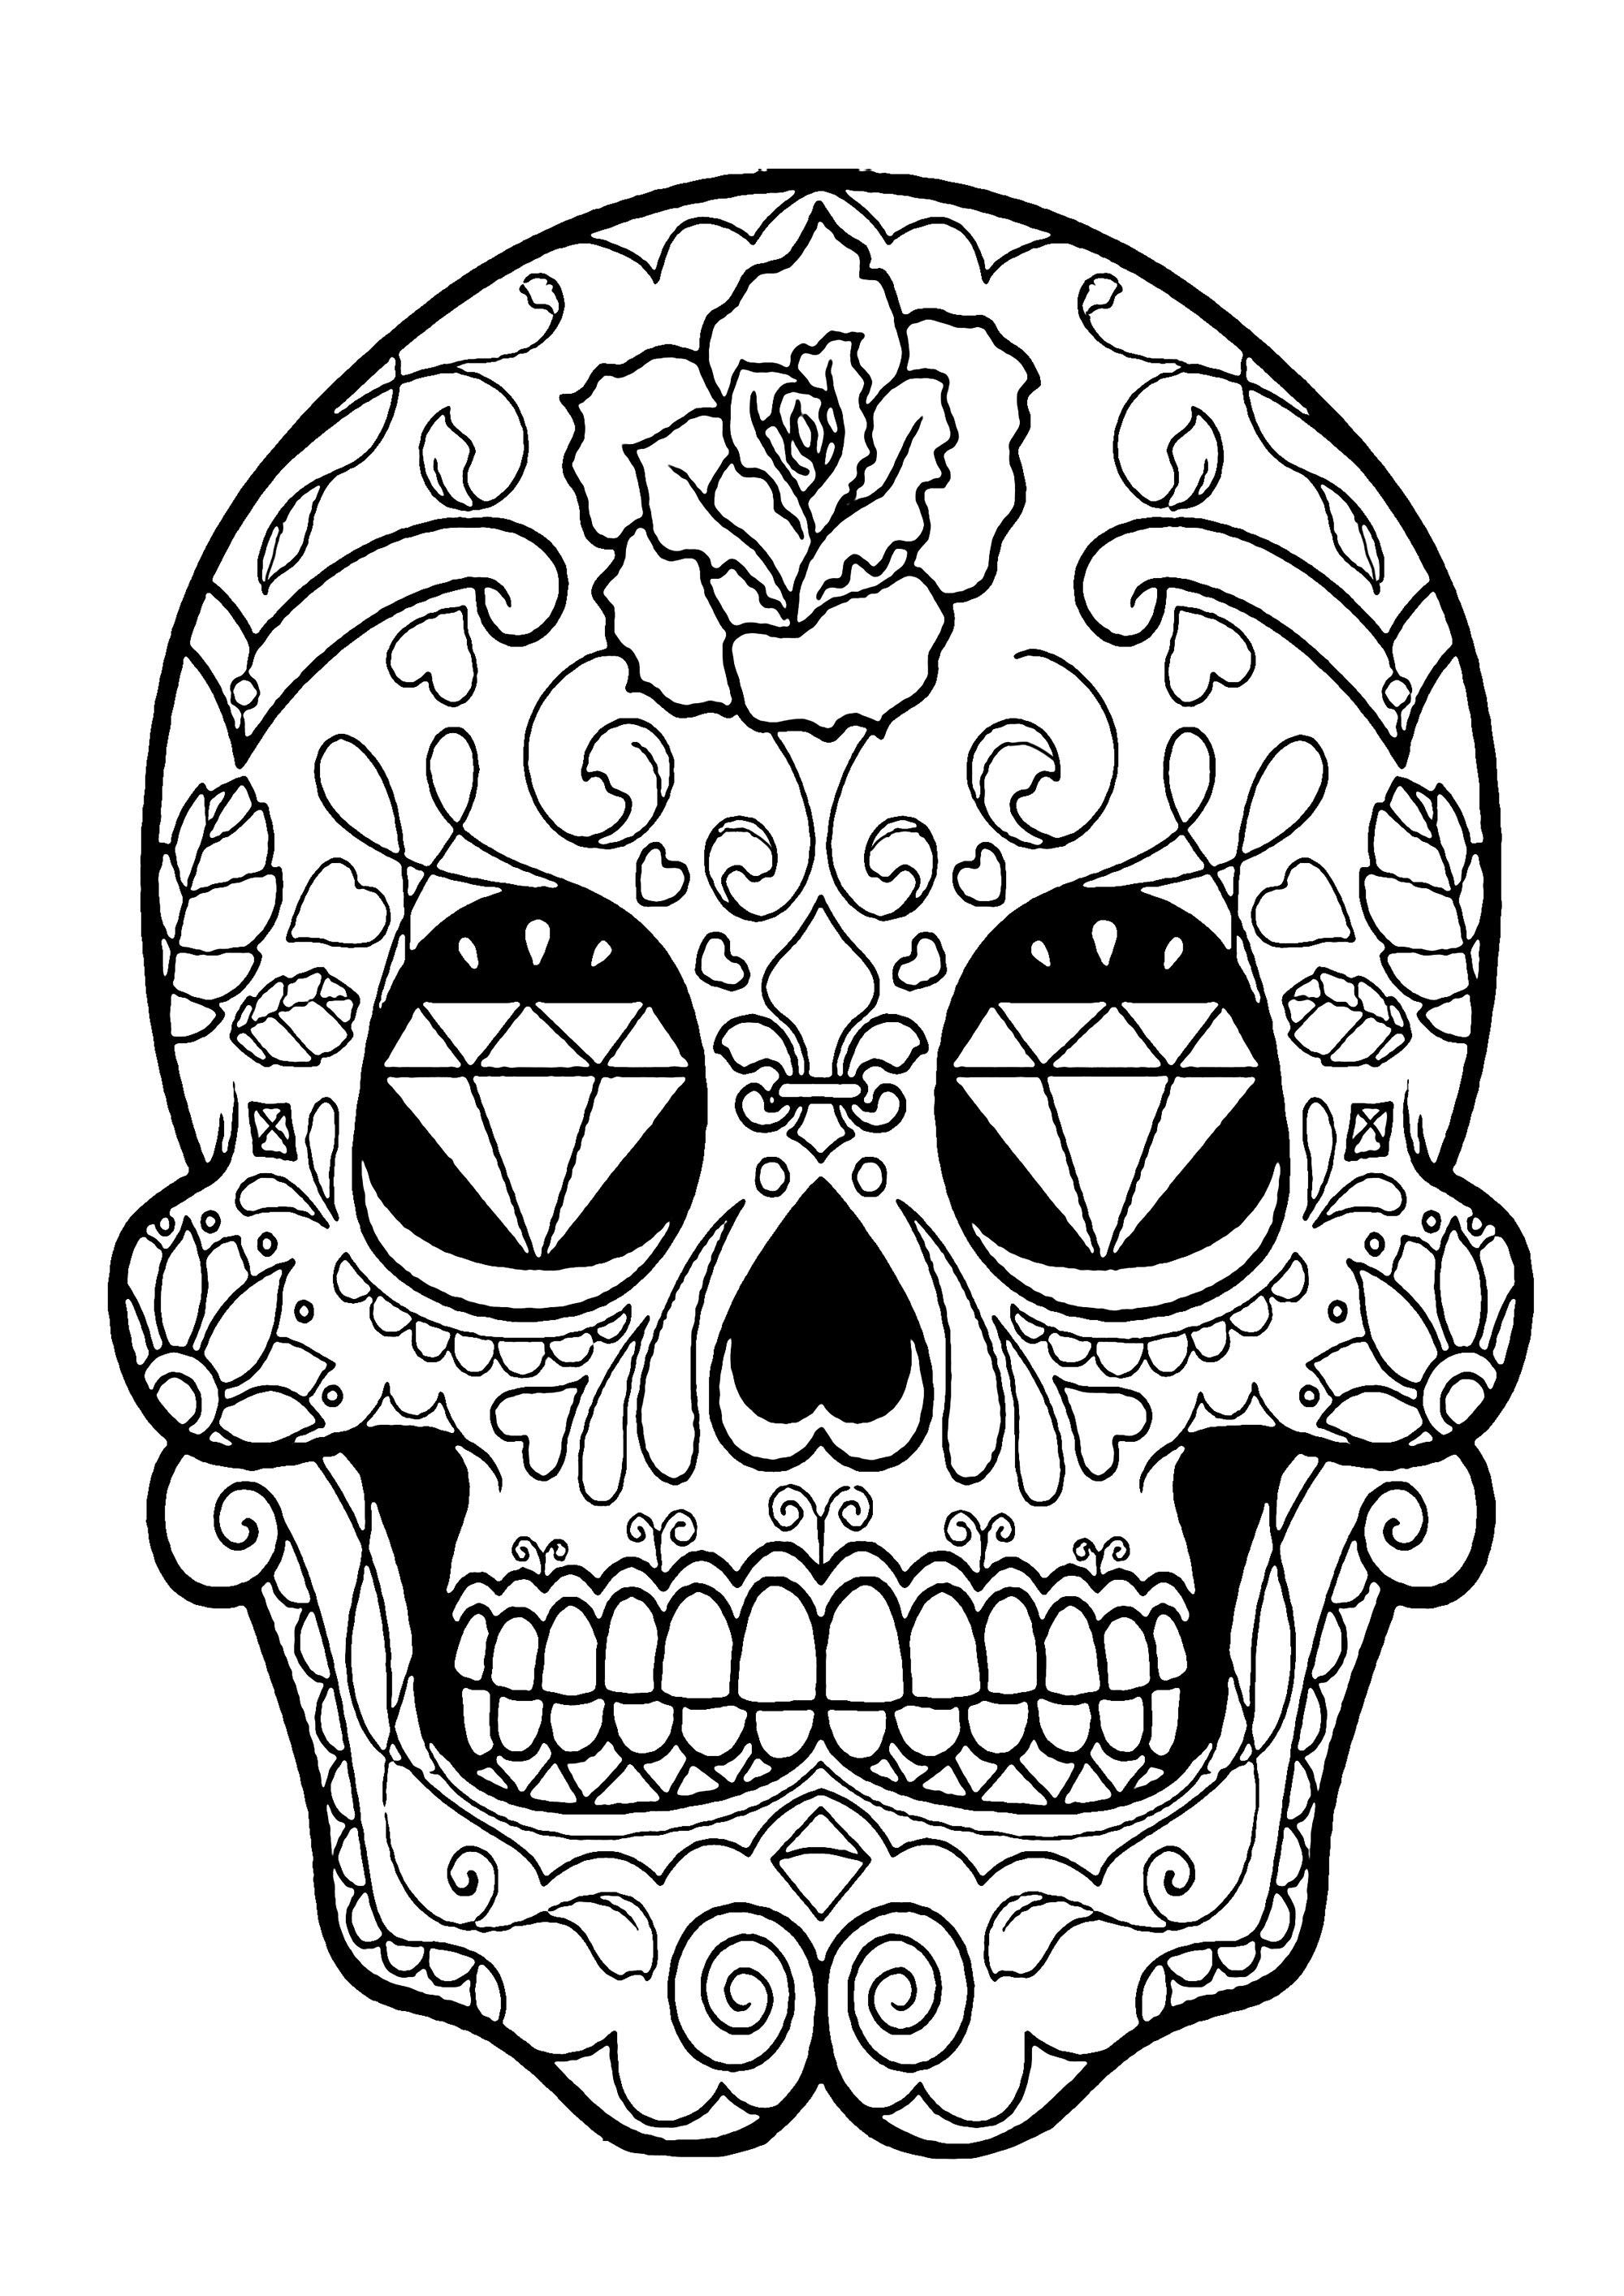 El Dia De Los Muertos 5 El Dia De Los Muertos Coloring Pages For